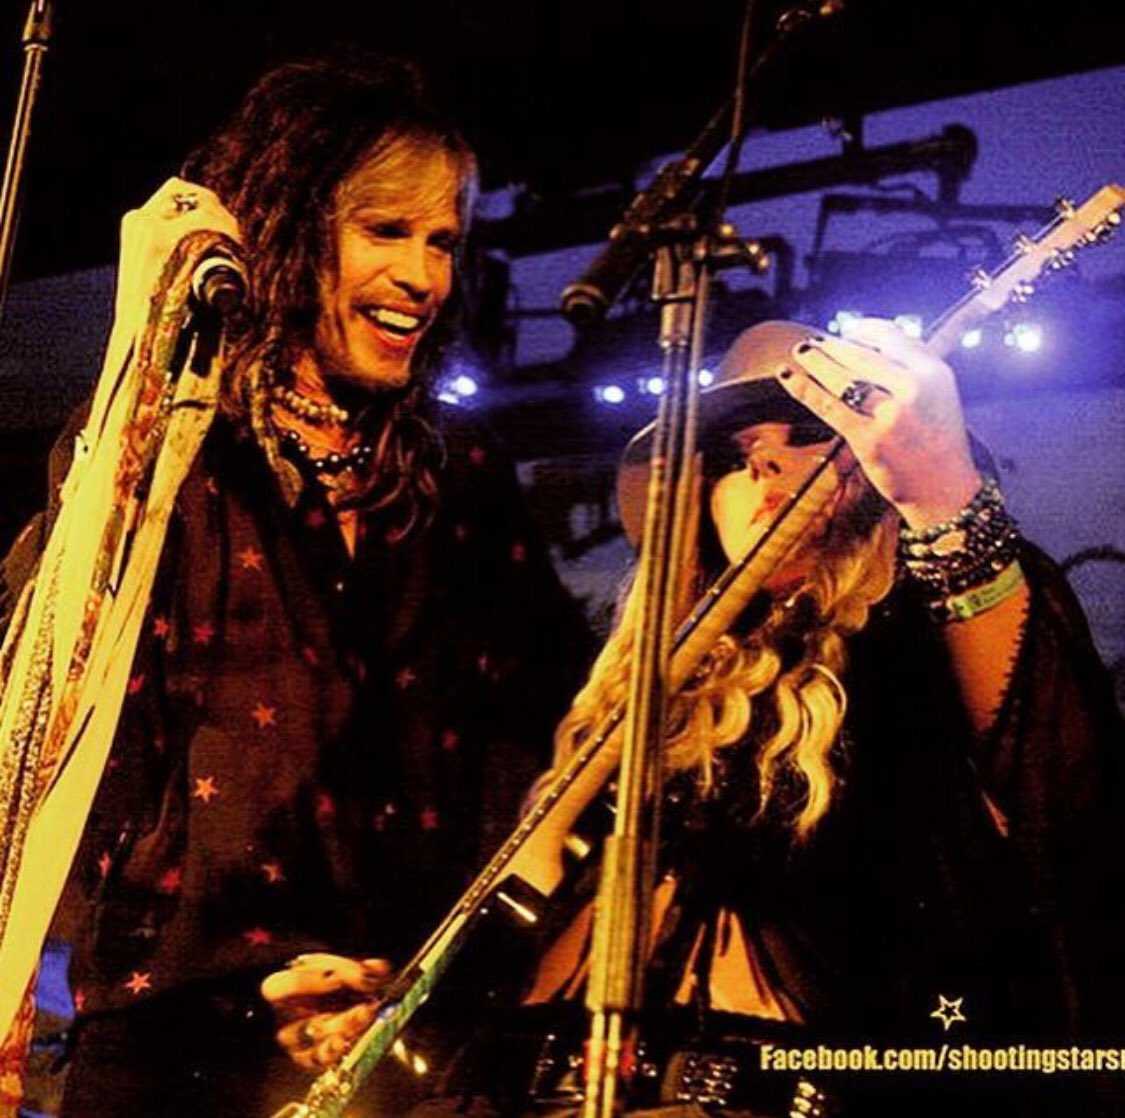 Happy birthday to awesome Steven Tyler